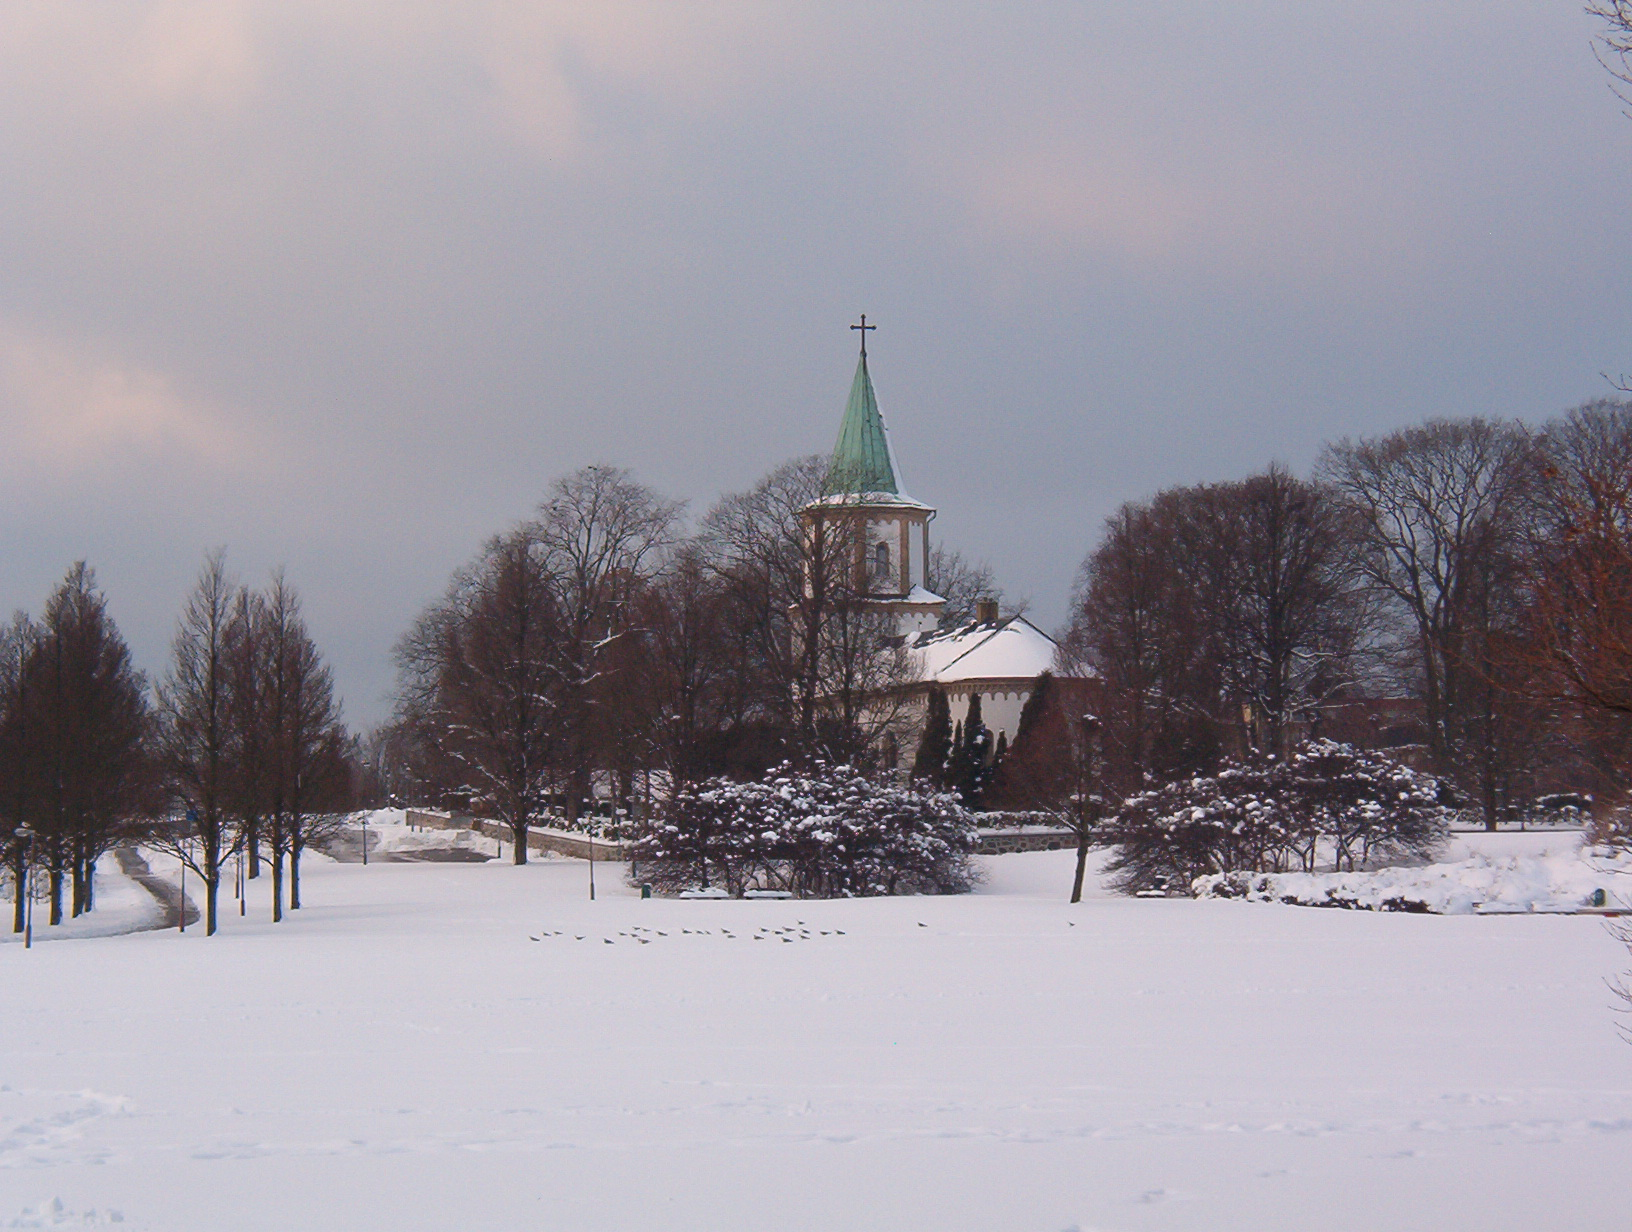 stockholm in the snow - photo #21